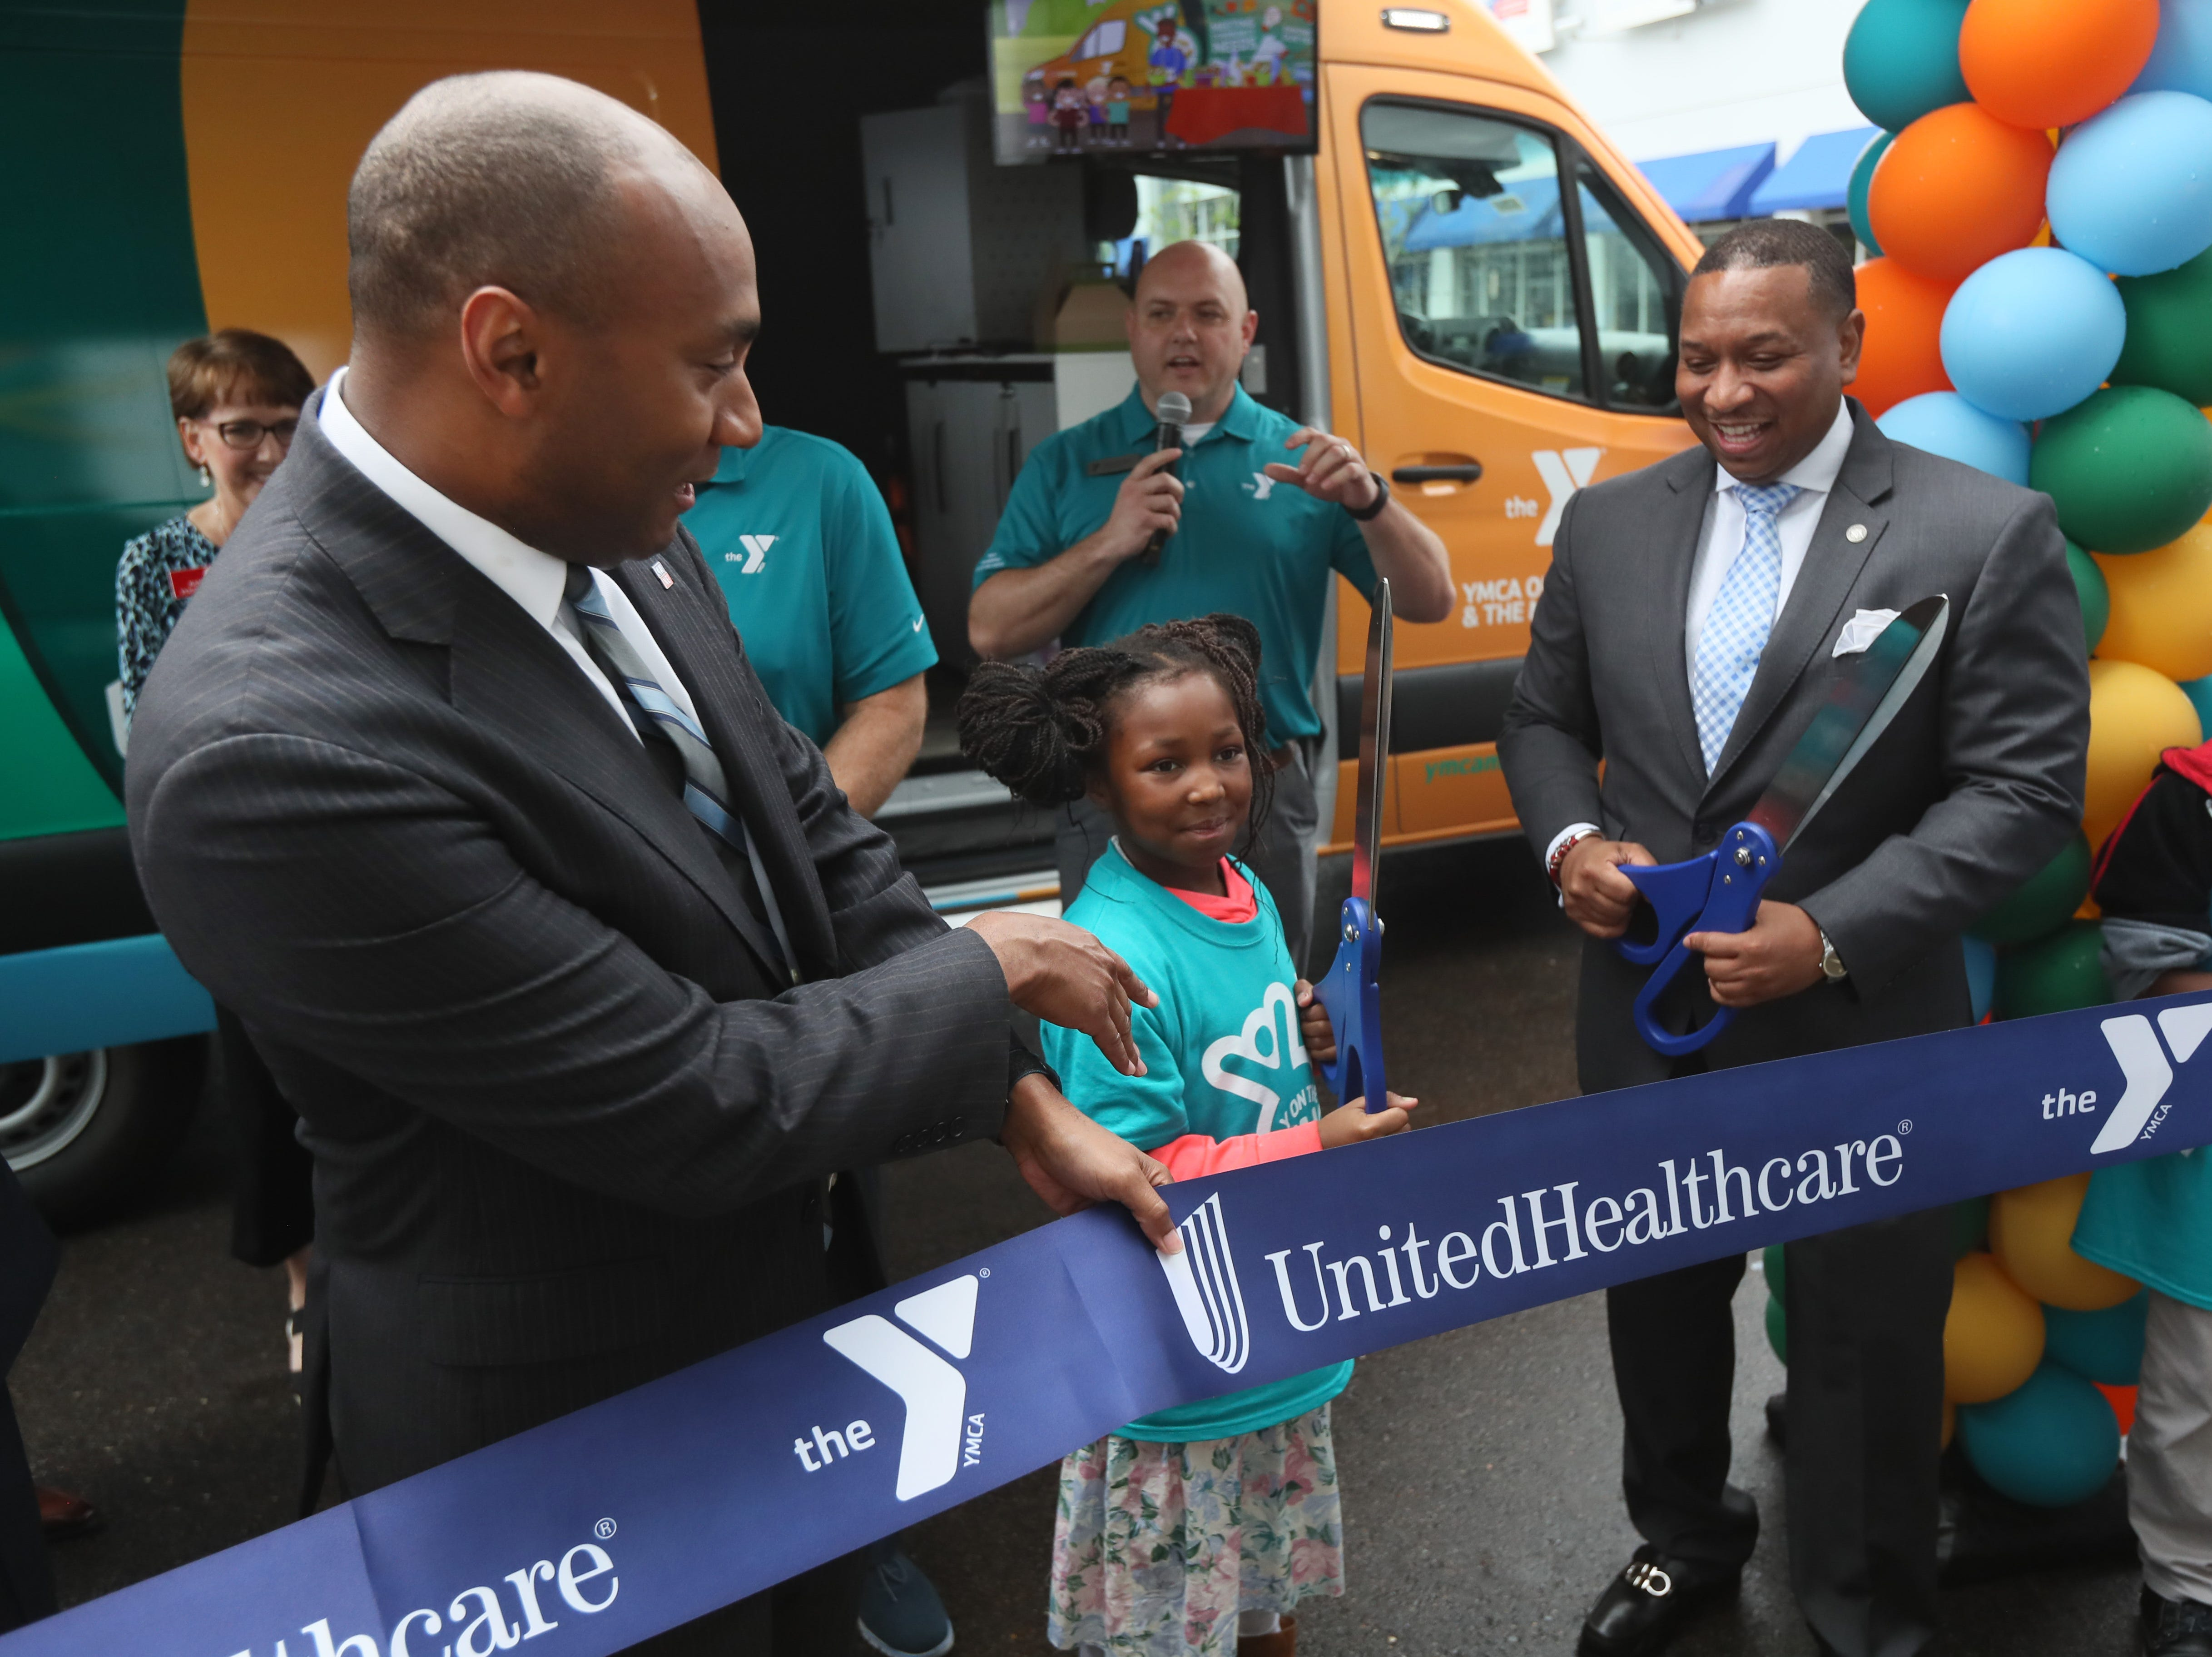 Shelby County Mayor Lee Harris joins Zade White, 9, and Shelby County Schools Interim Superintendent Joris Ray as they help the YMCA announce their 'Y on the Fly' program at the Graceland soundstage in Whitehaven on Thursday, April 18, 2019. The Y-without-walls concept comes with two vans that will deliver programs and services to young people who don't live near a YMCA.